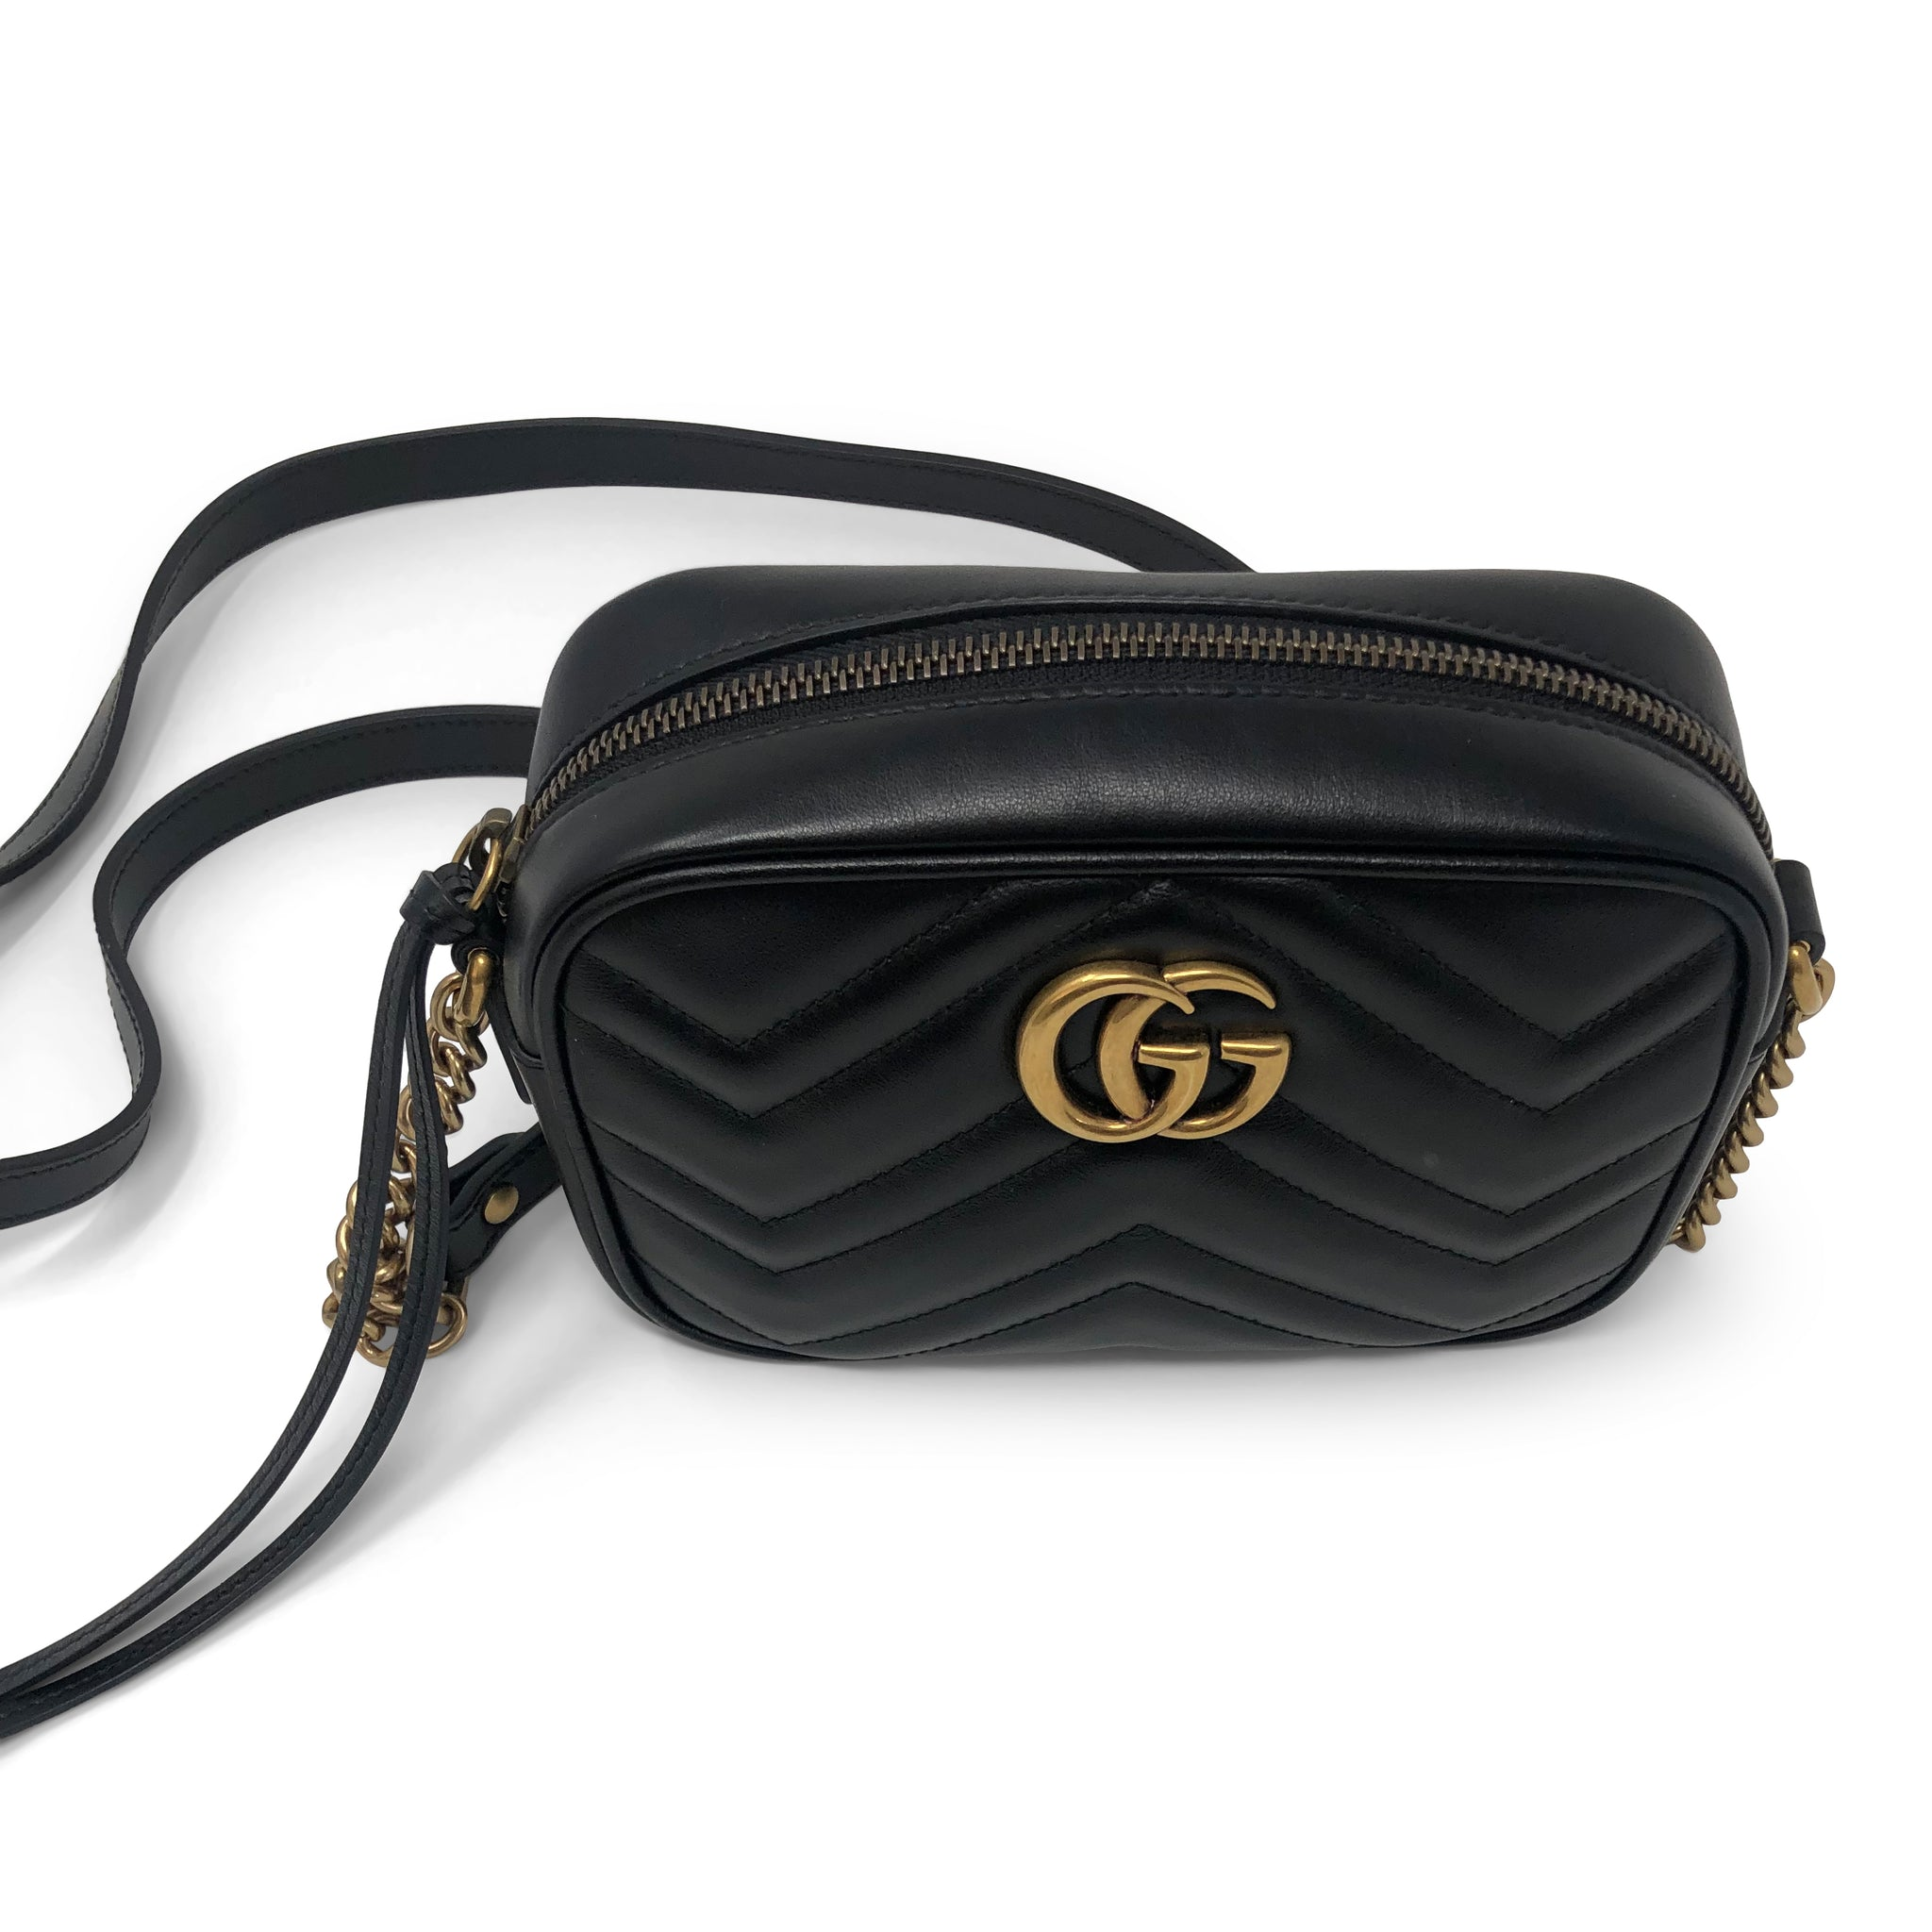 432c4e436 ... Load image into Gallery viewer, Gucci GG Marmont Matelassé Mini Camera  Bag ...